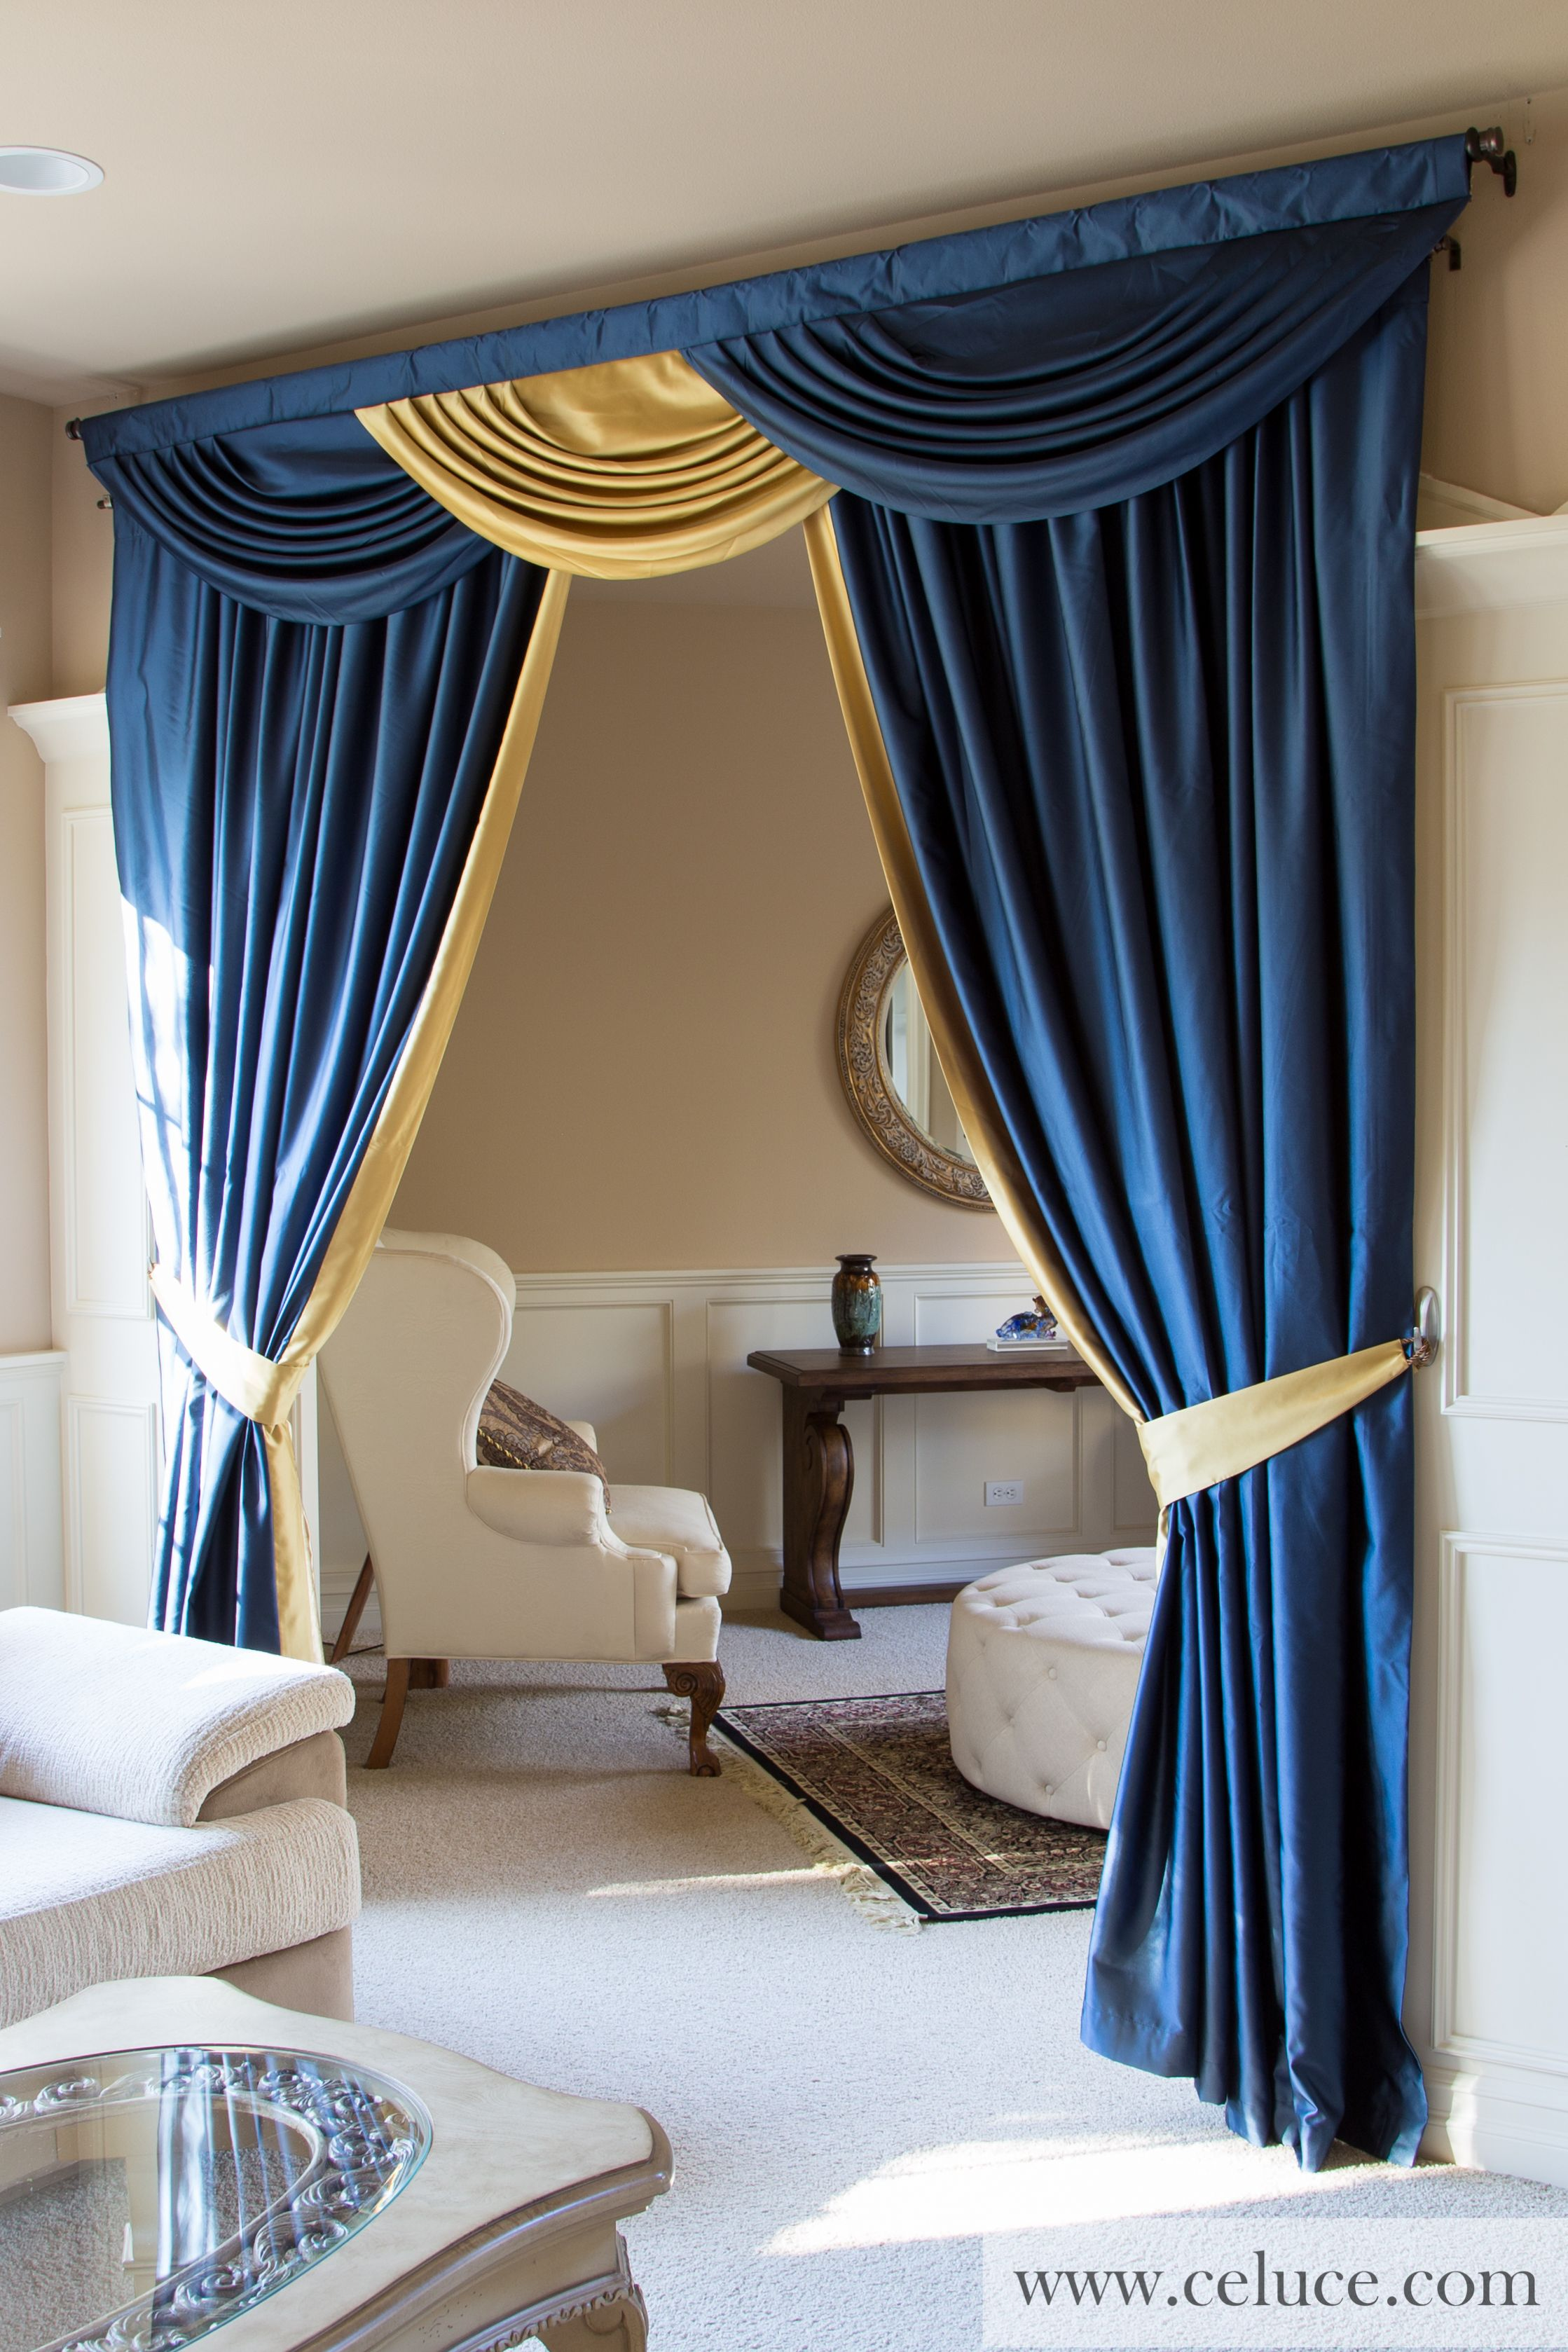 Go gold curtains and valances - Blue And Gold Classic Overlapping Swag Valance Curtains Www Celuce Com